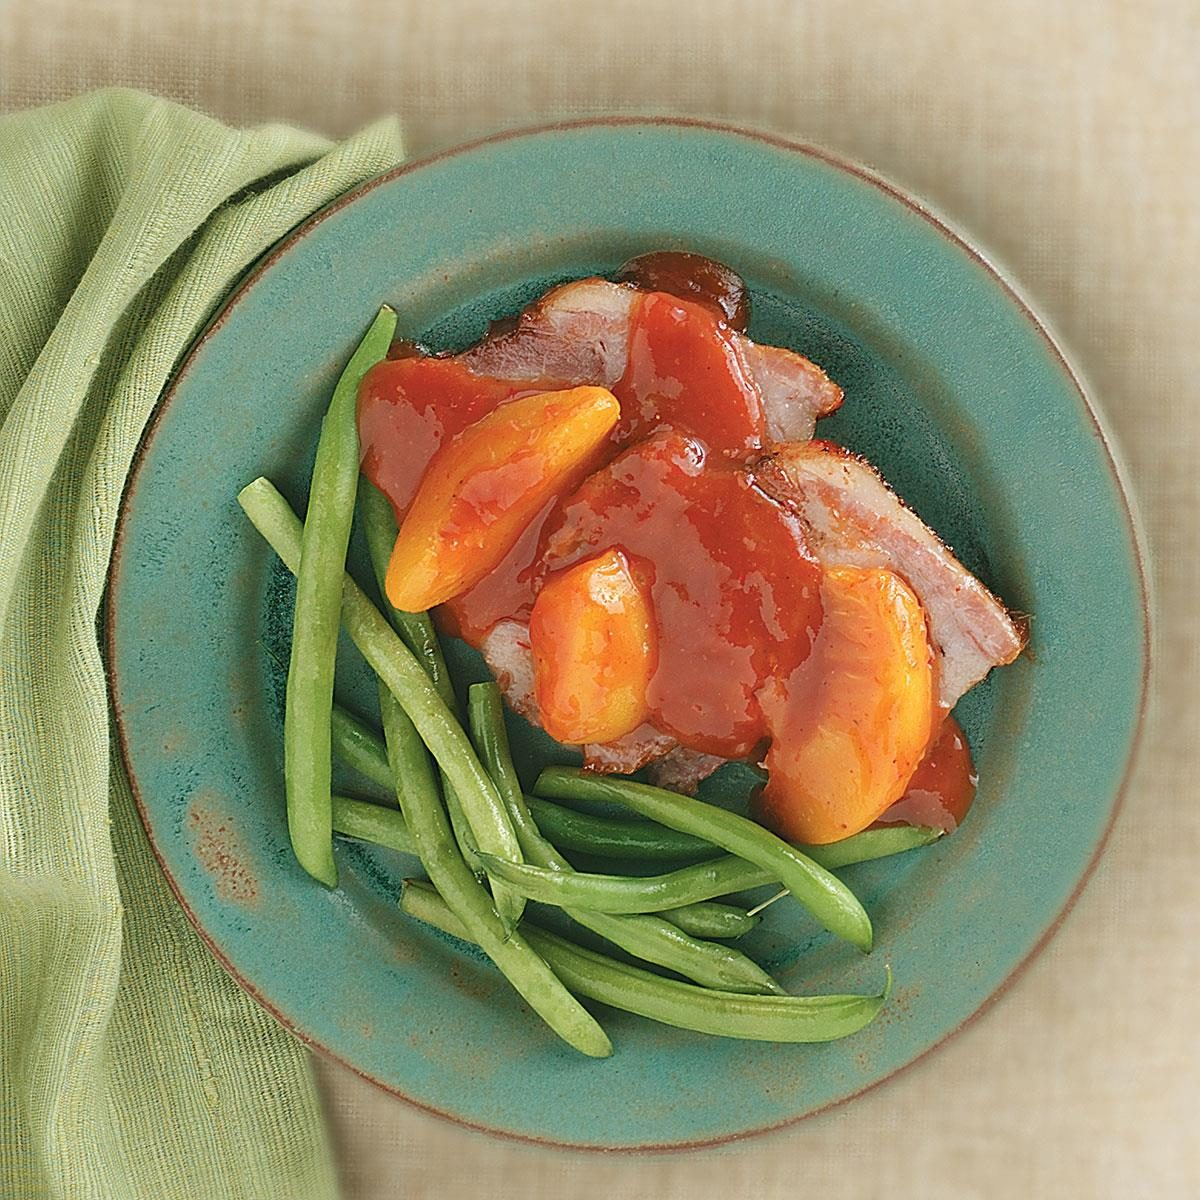 Pork roast with peach sauce recipe taste of home - Christmas pork roast five recipes ...